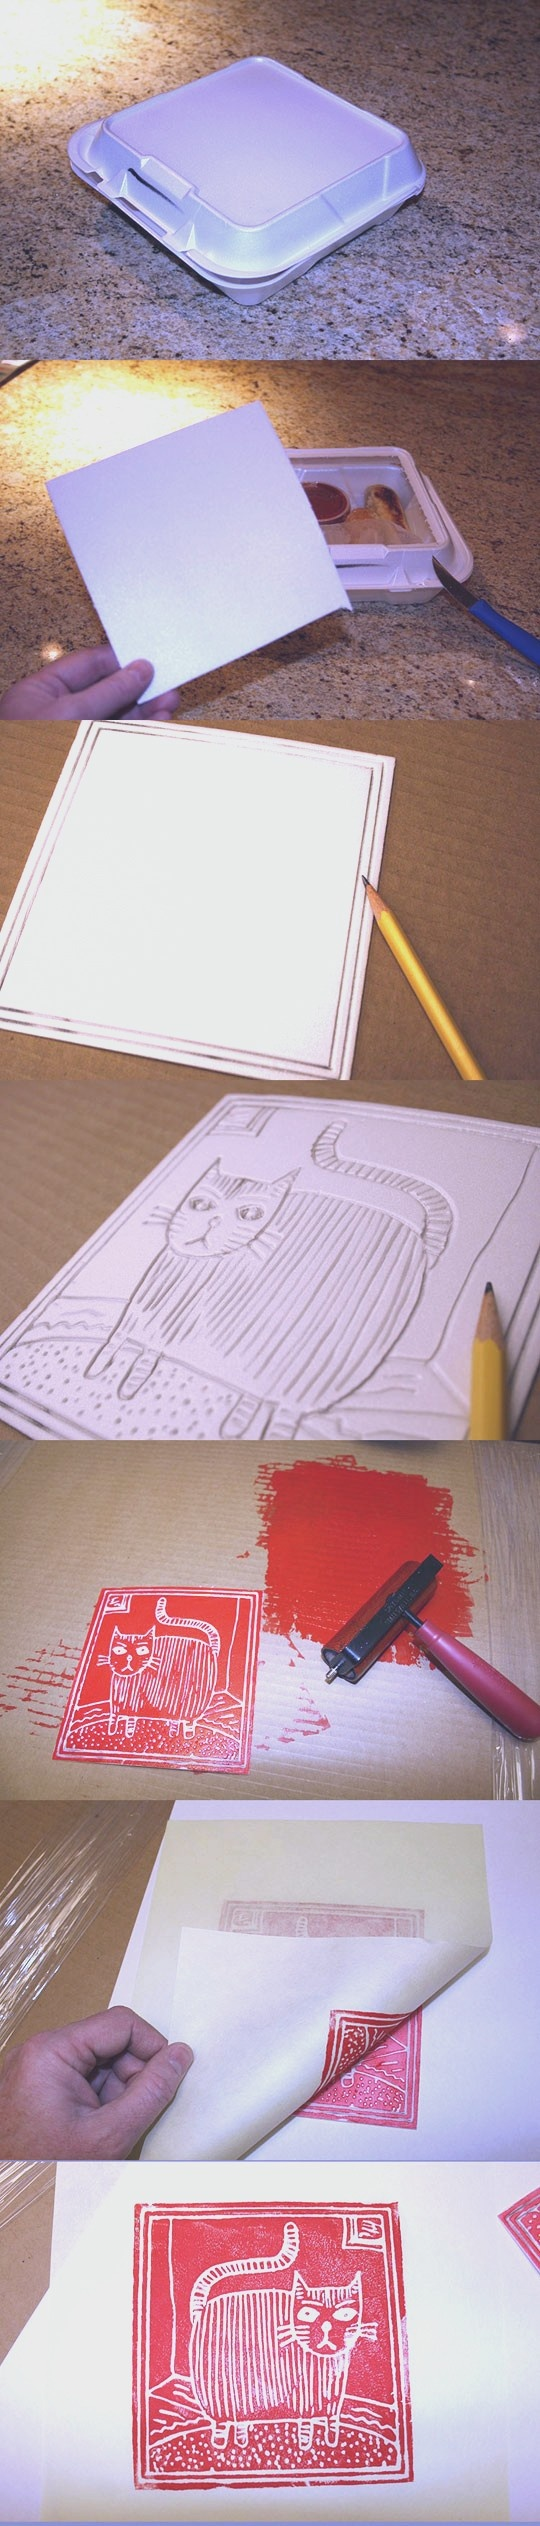 foam stamps - this would be great to artificially tile a wall with images, or for false linoleum